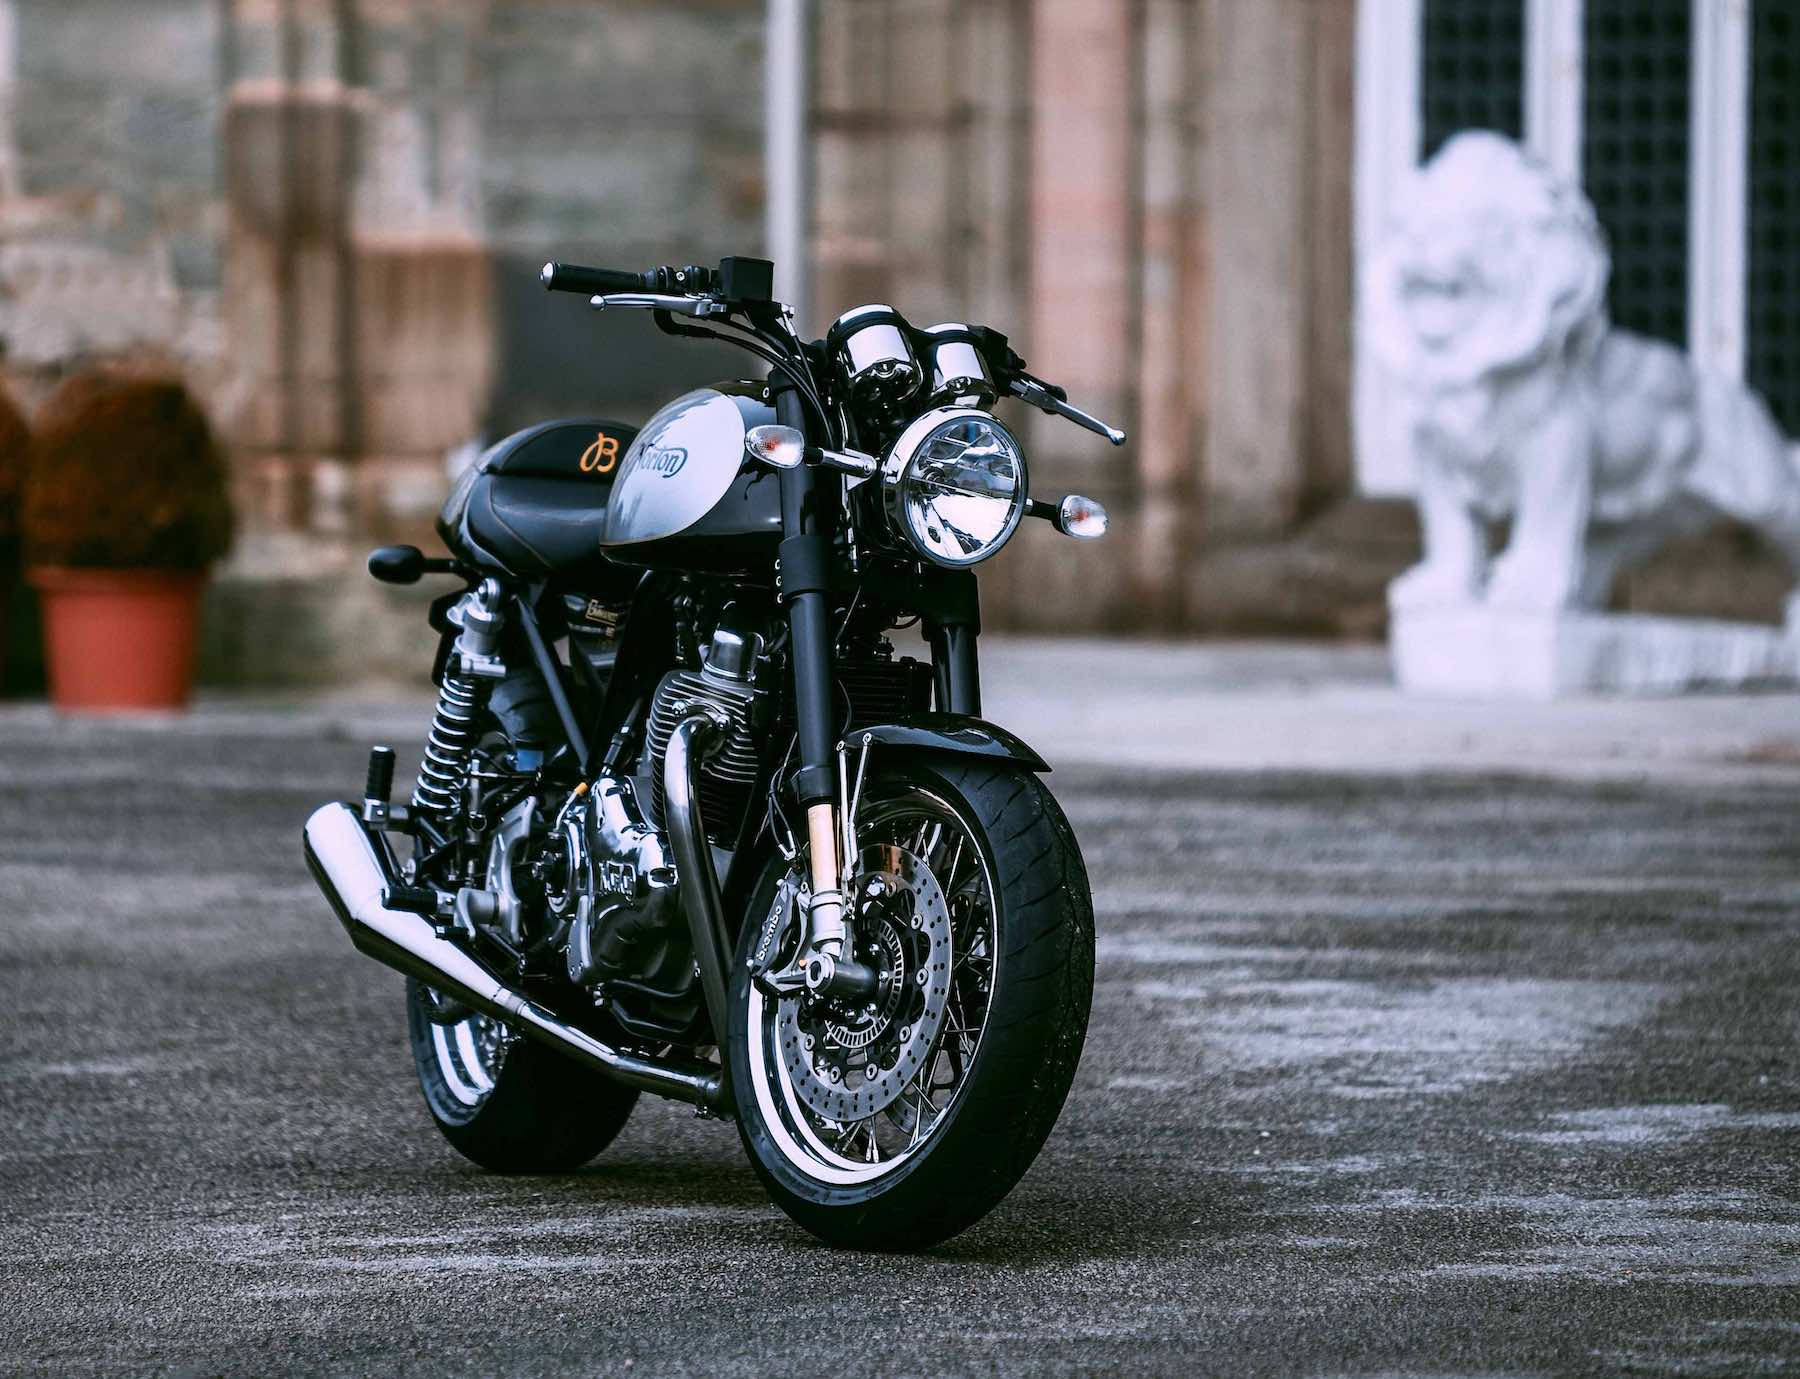 2011 Norton Commando 961 Cafe Racer Specs Images And Pricing